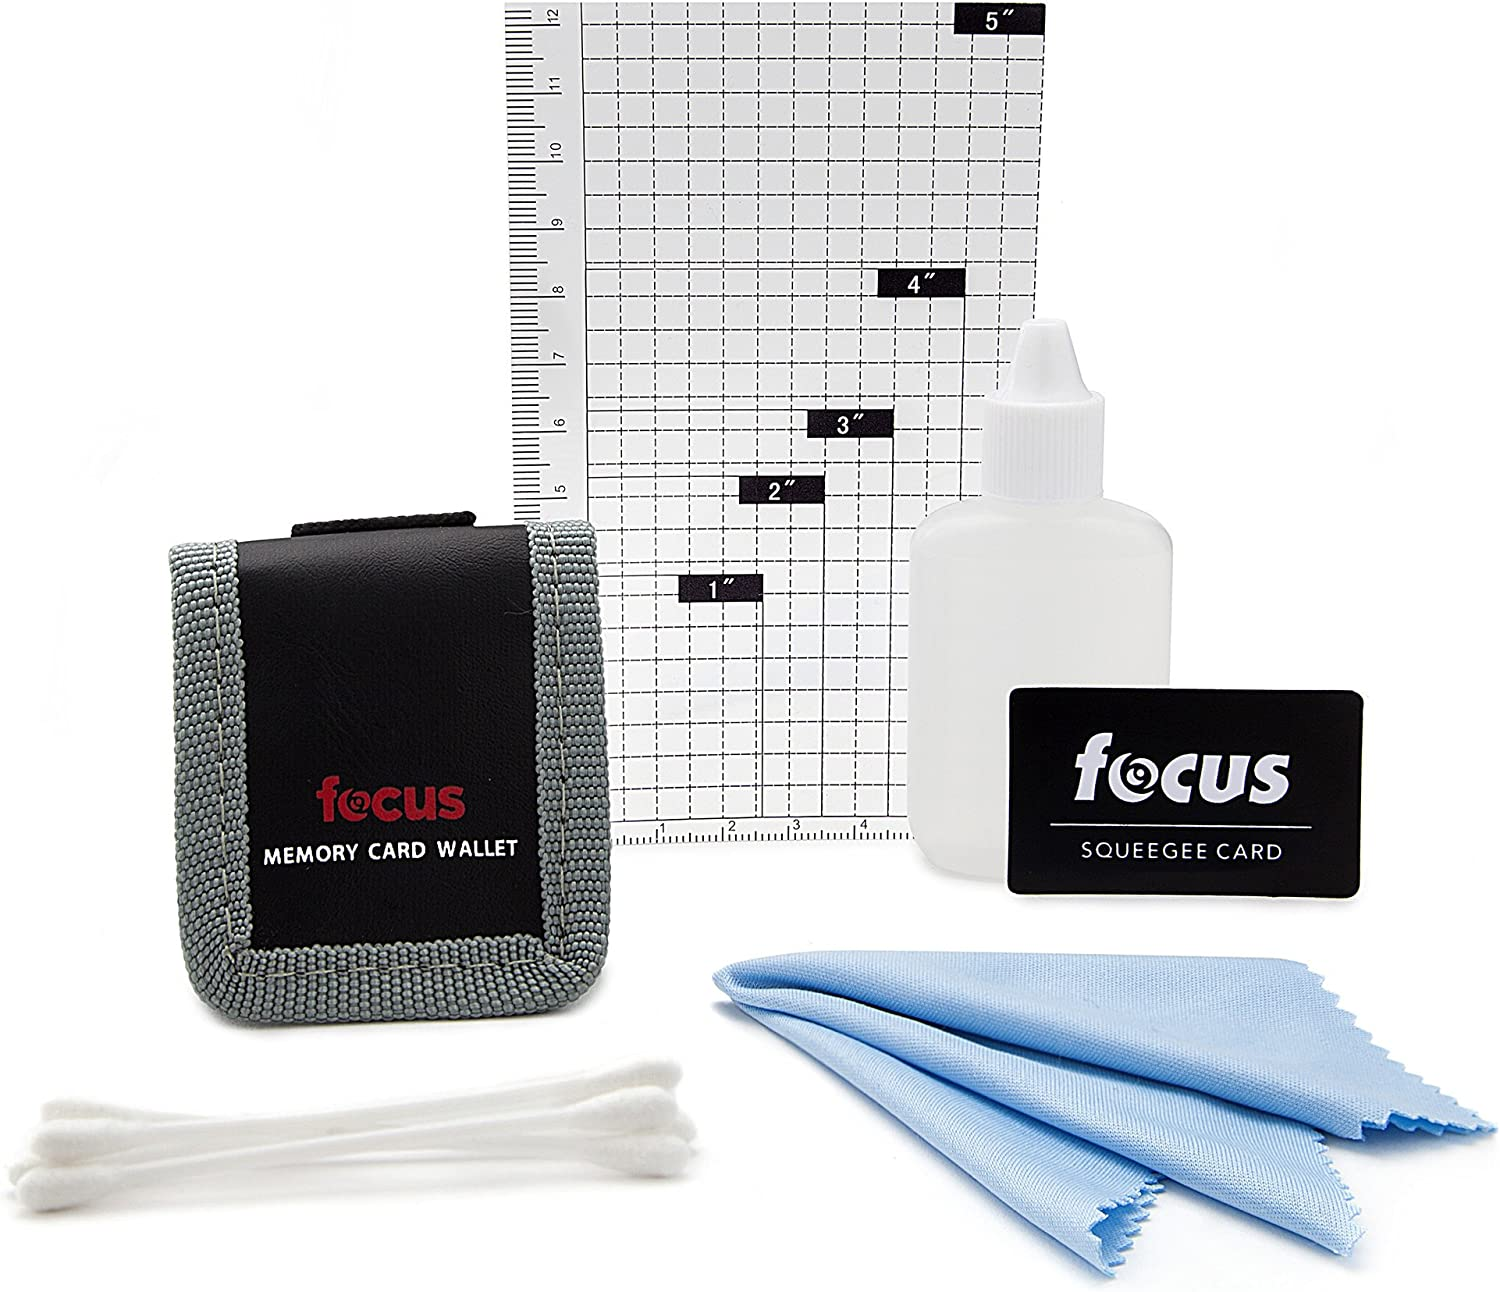 Focus 5-Piece Digital Camera Cleaning /& Accessory Kit